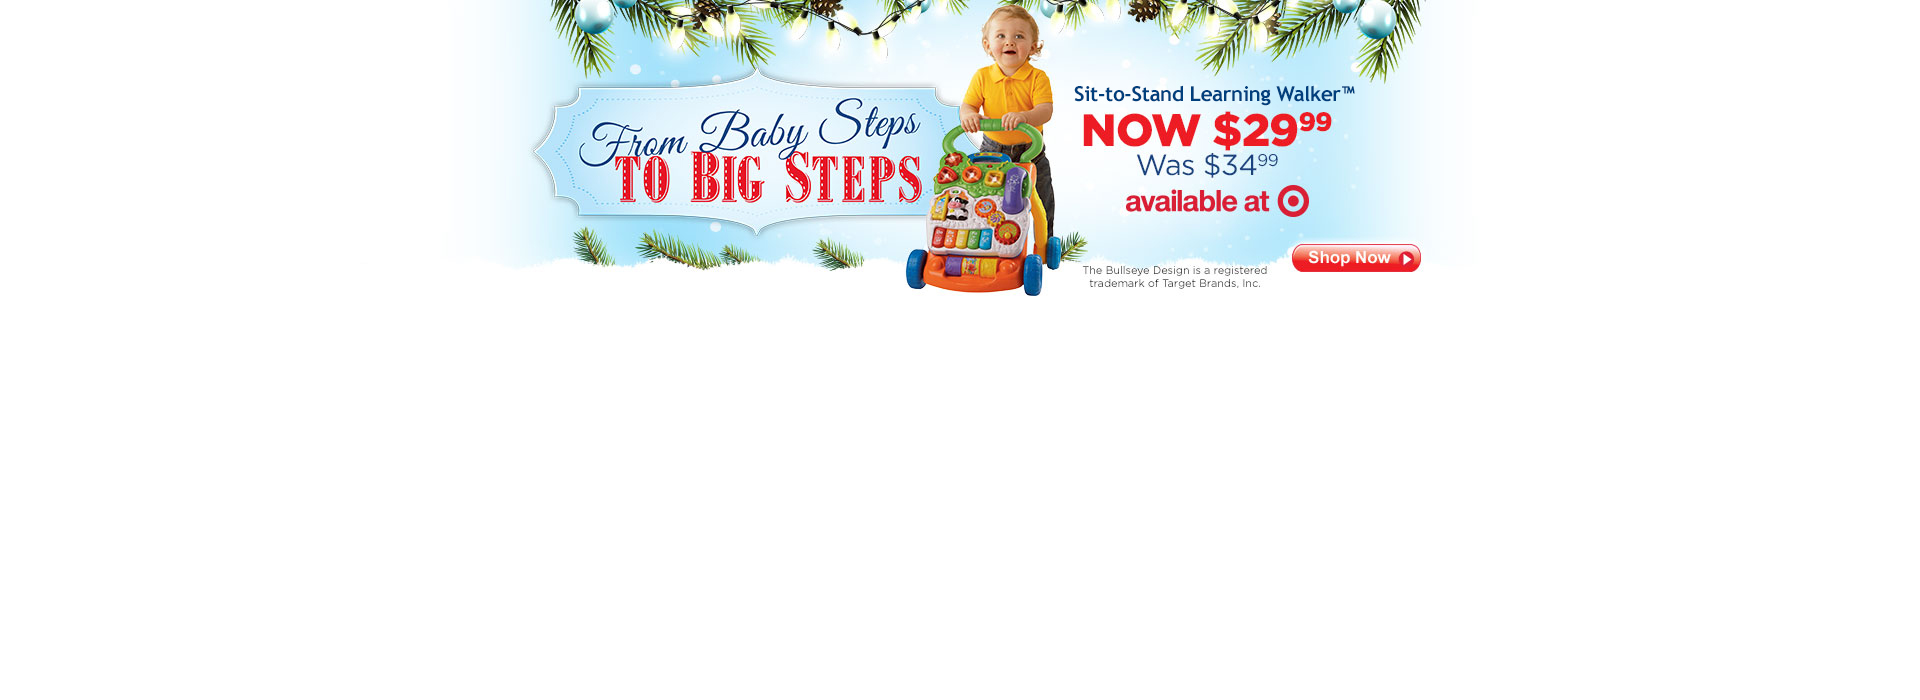 Sit to Stand Learning Walker - Target Now  $24.99